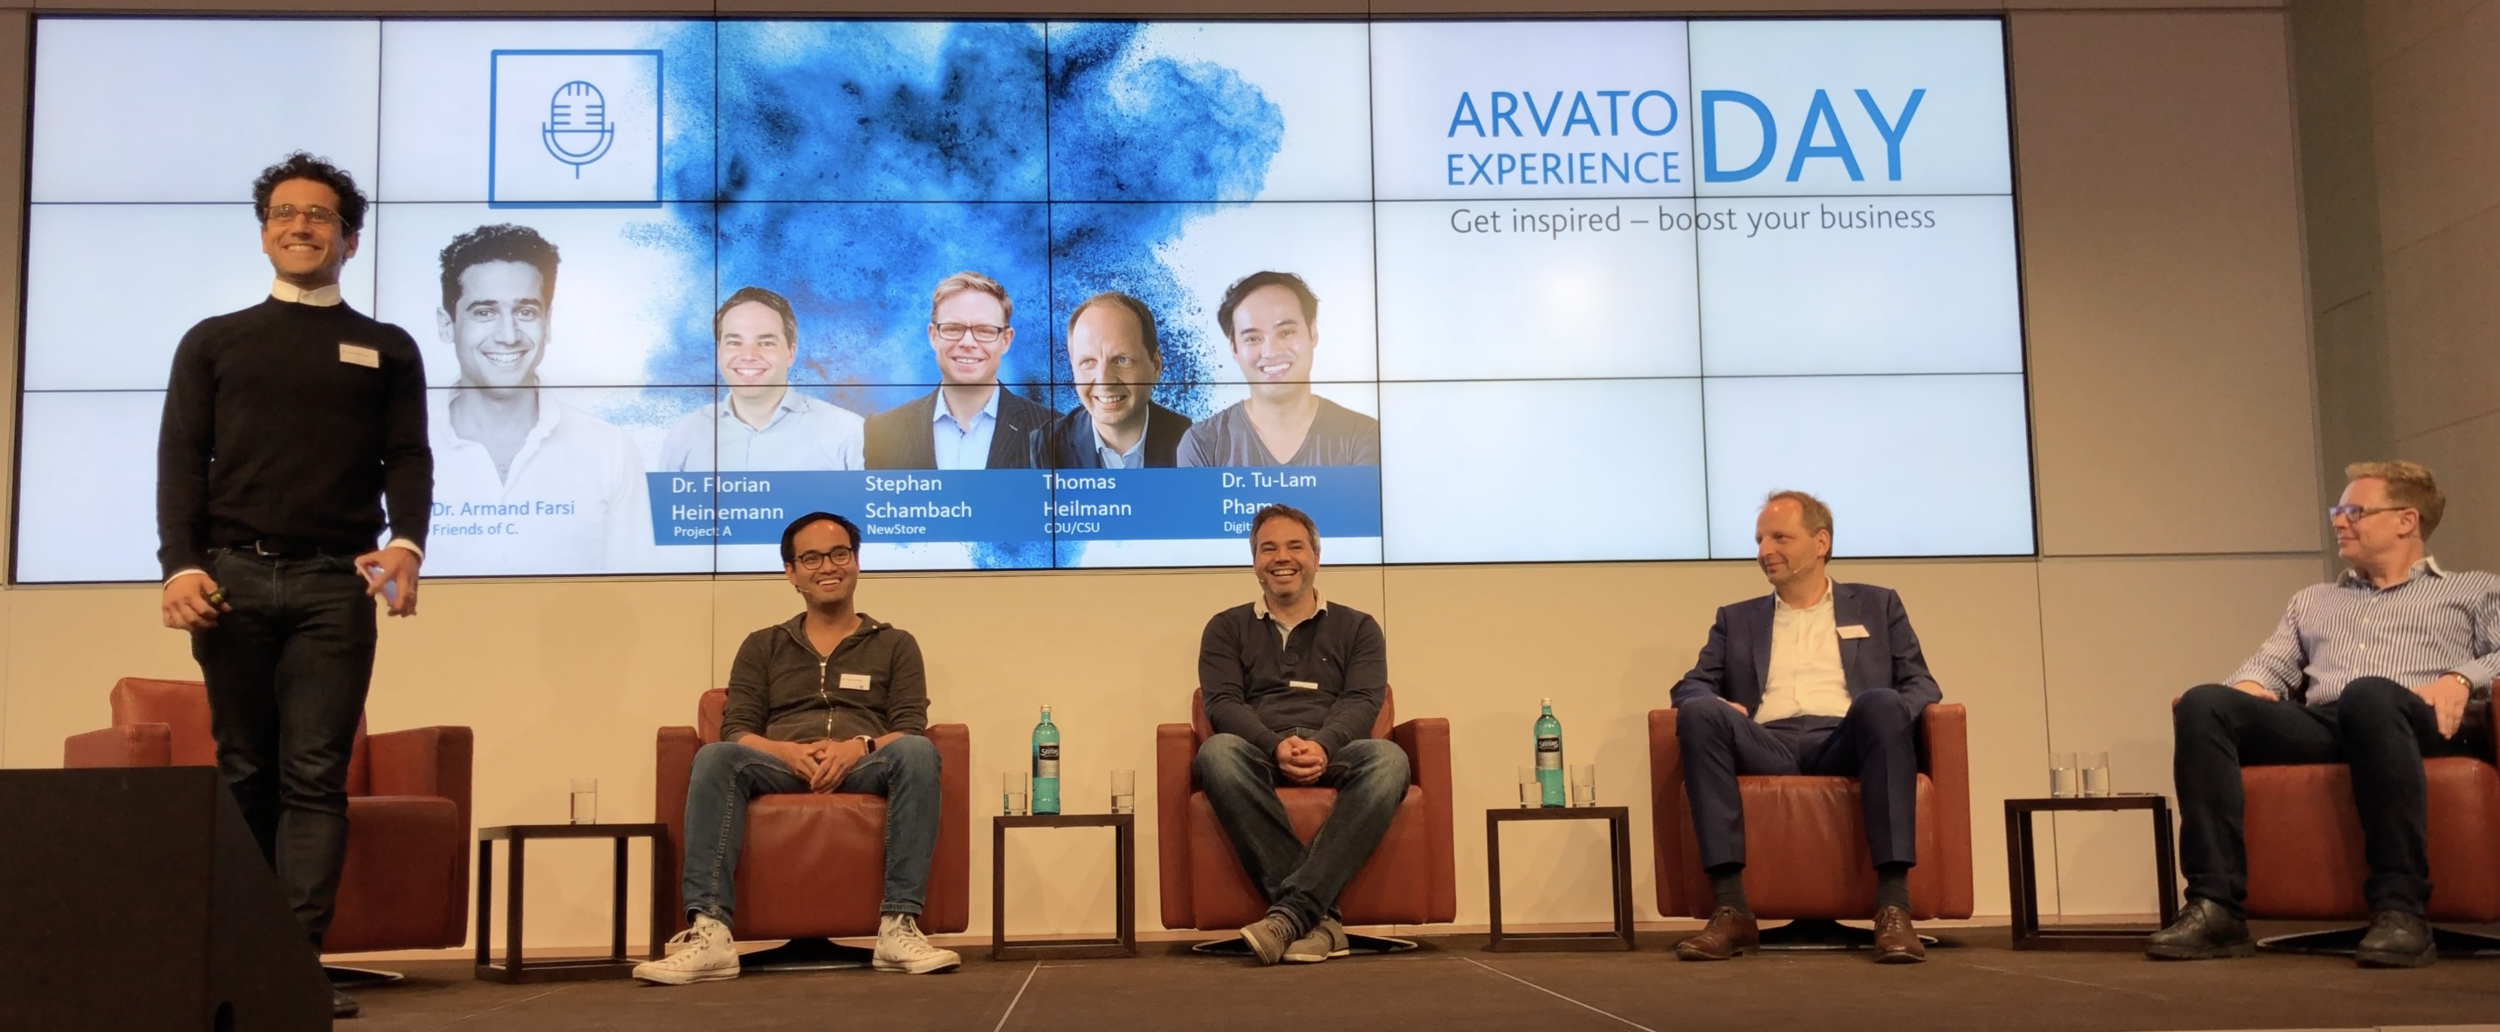 Arvato eXperience Day Panel Debate, Berlin